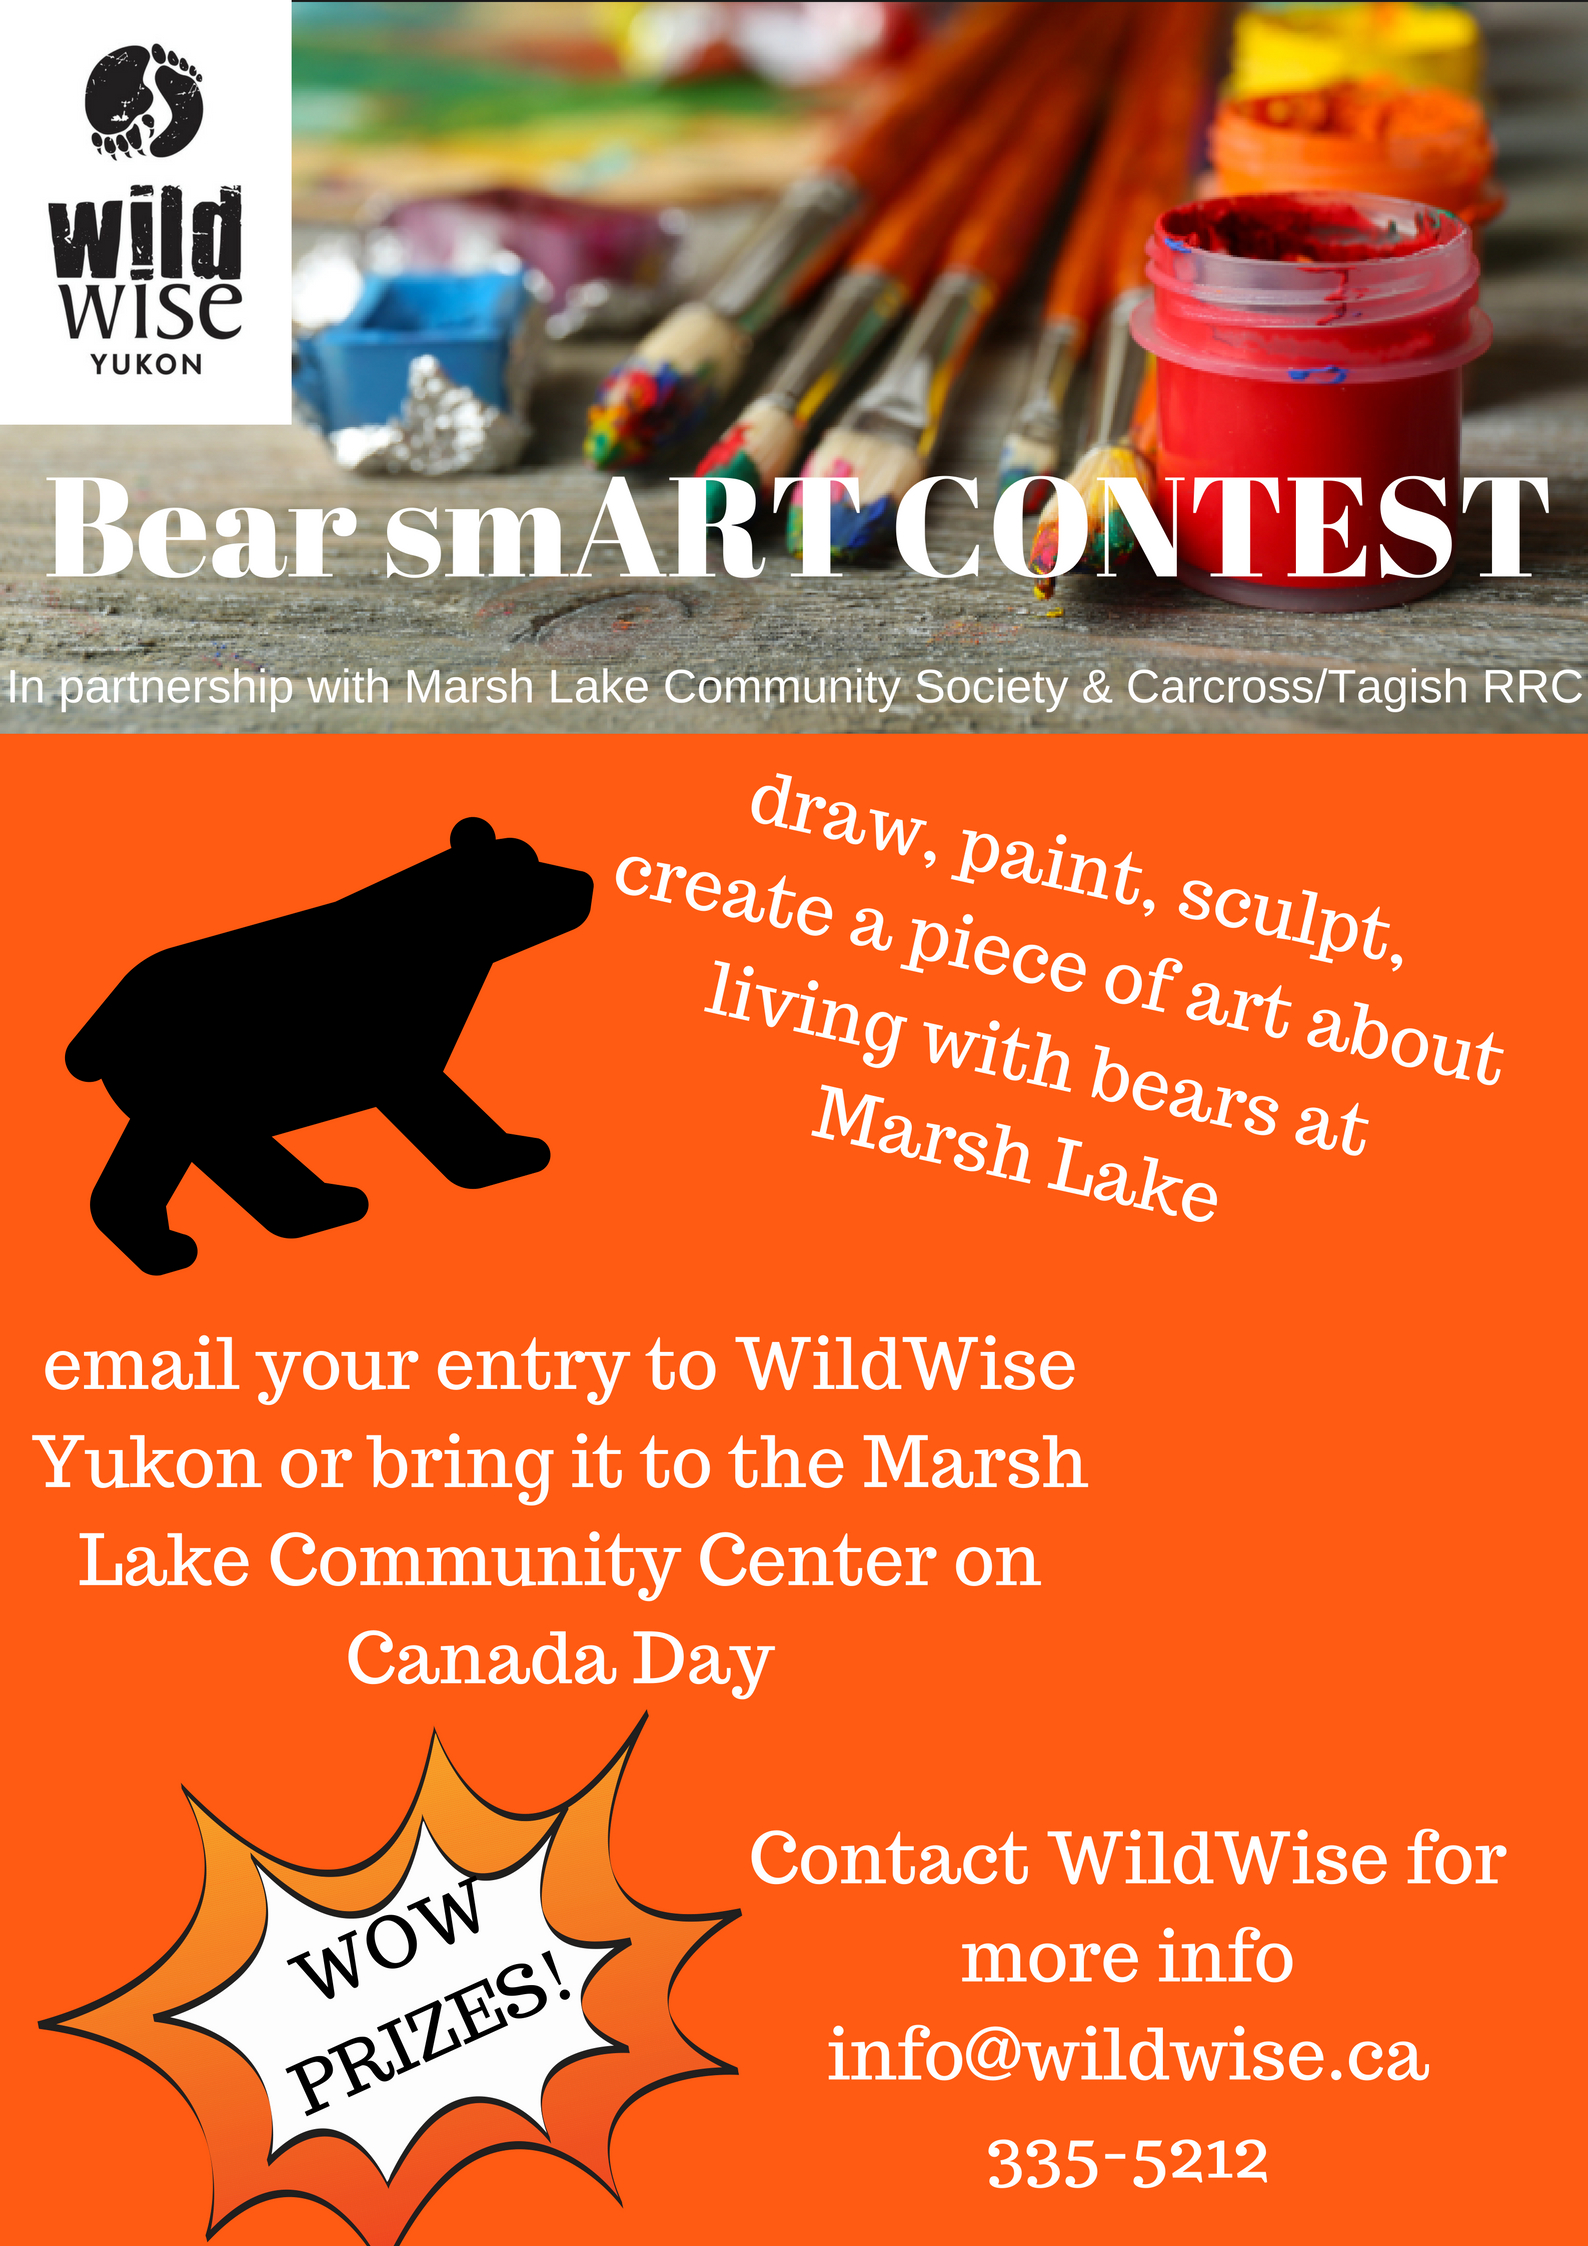 Wild about art? - Enter this competition, draw attention to living peacefully with bears, win a prize!